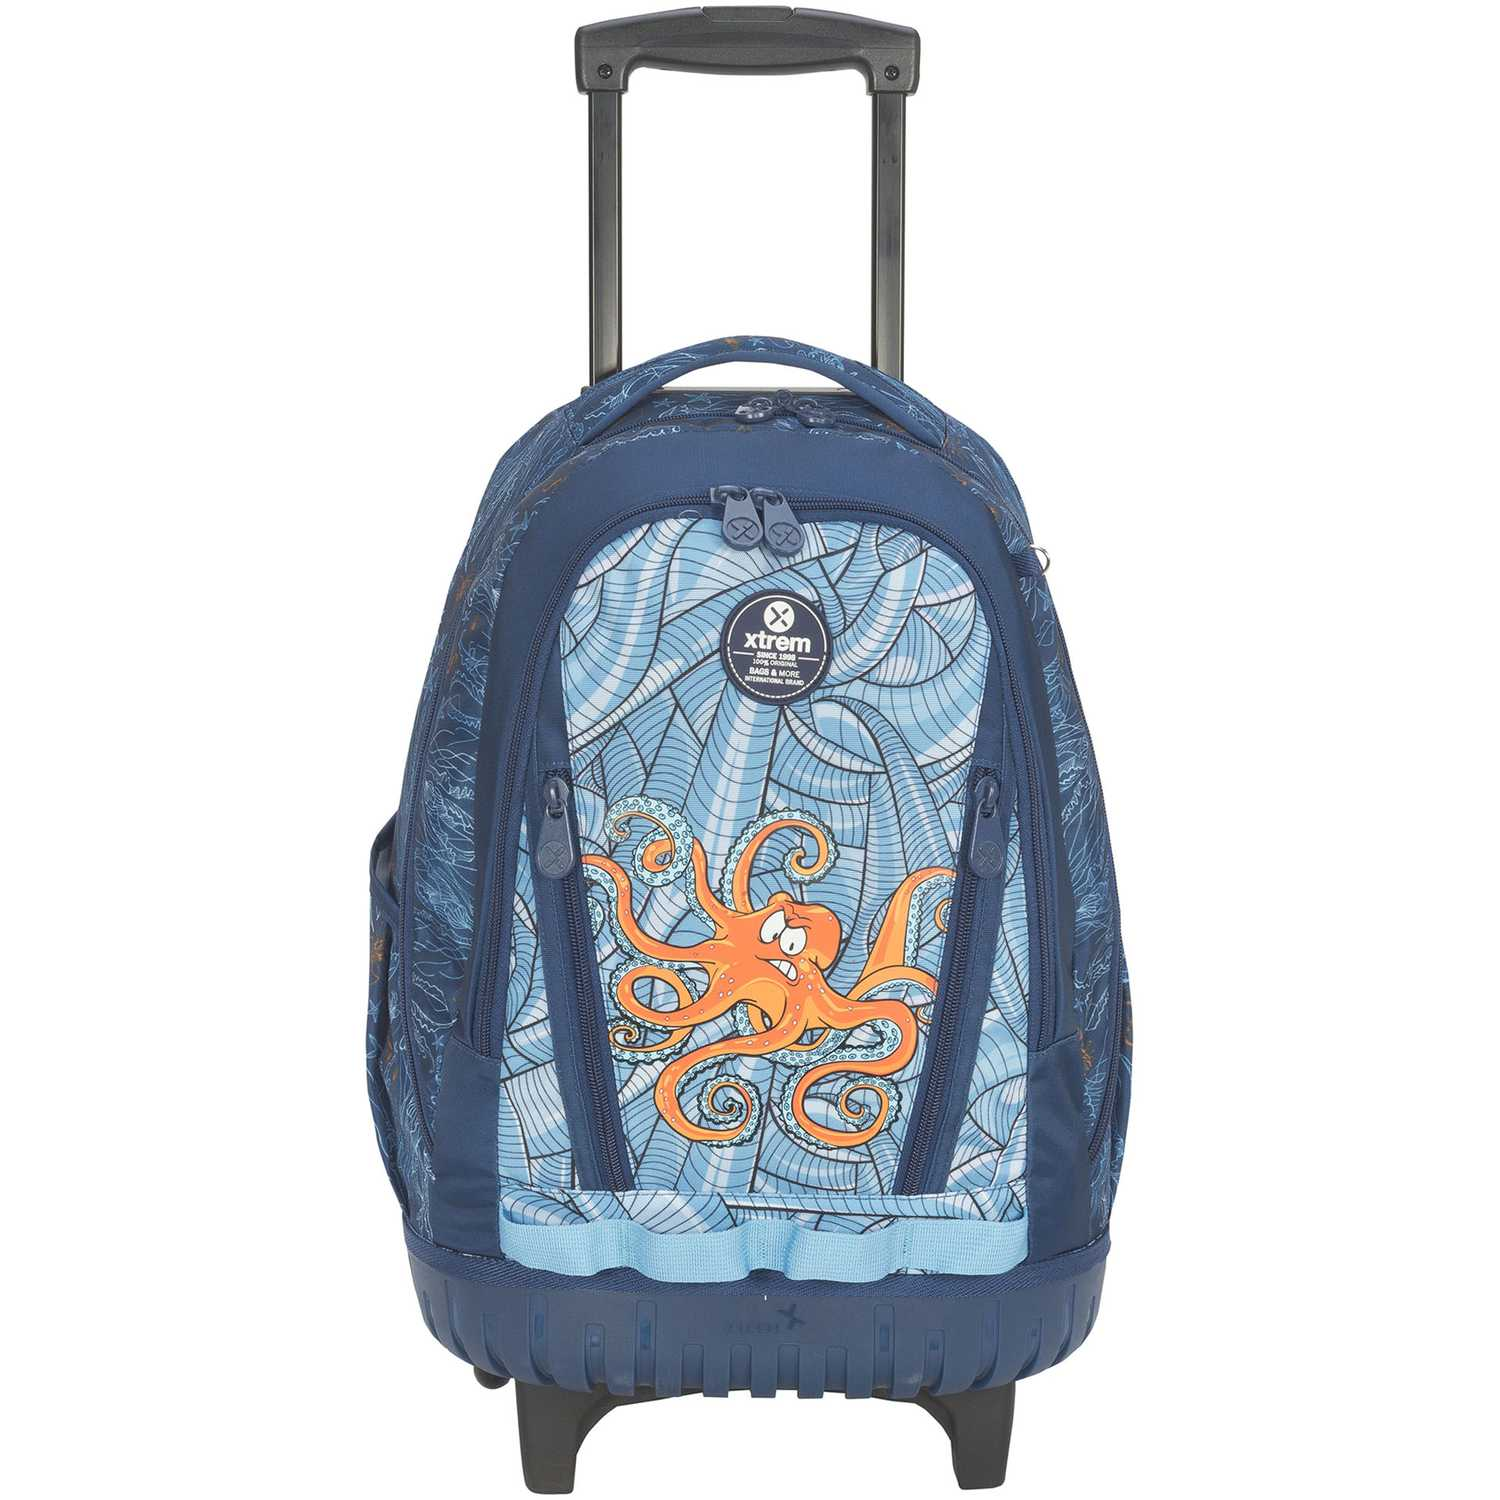 Mochila con ruedas de Niño Xtrem Azul backpack with wheels under the sea cross 830